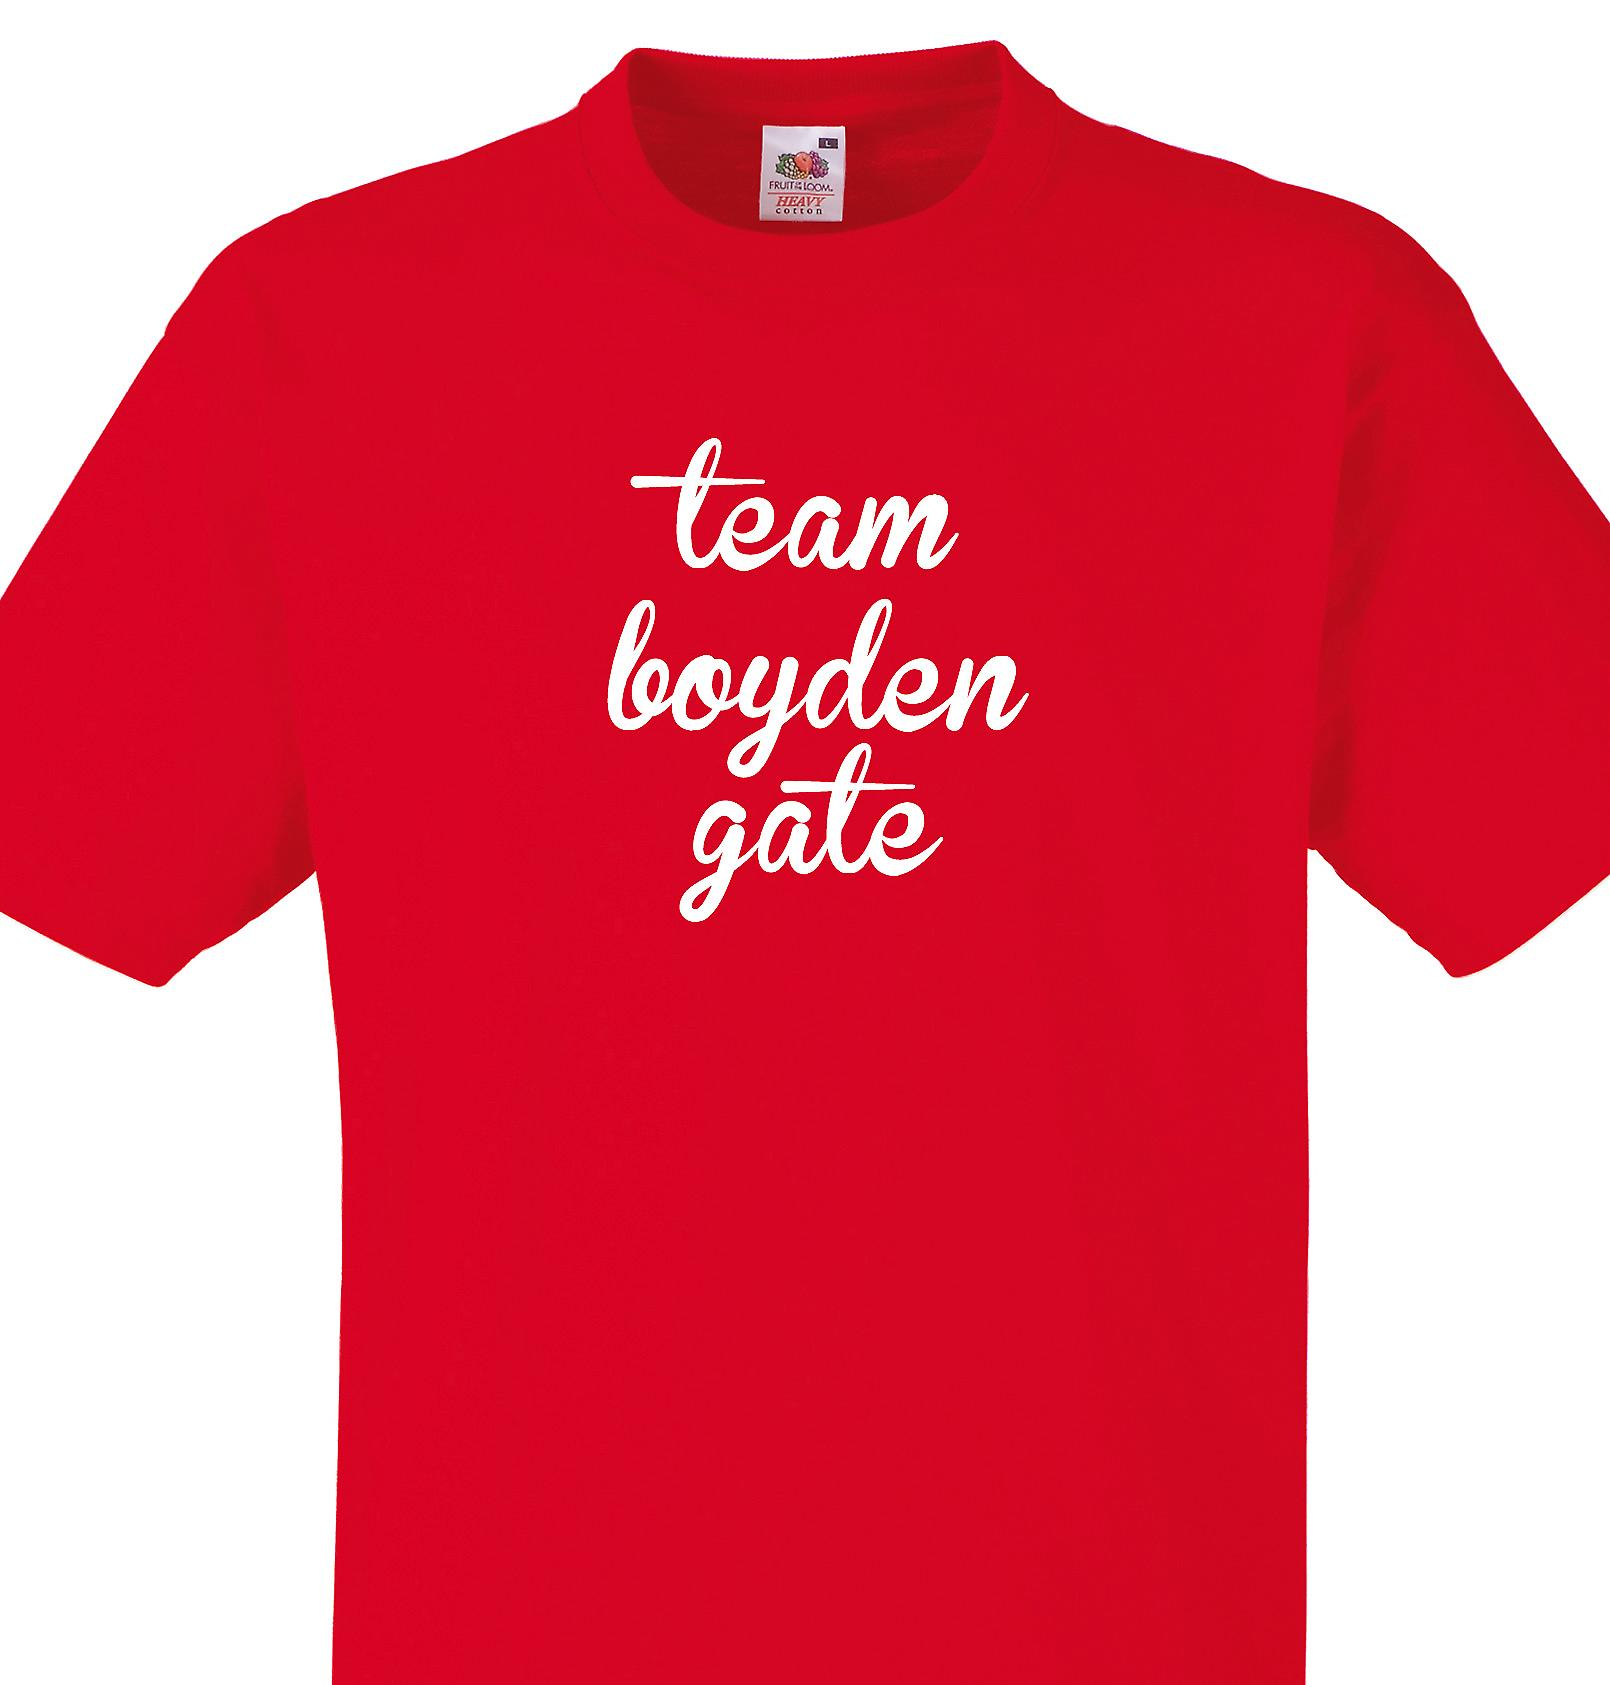 Team Boyden gate Red T shirt